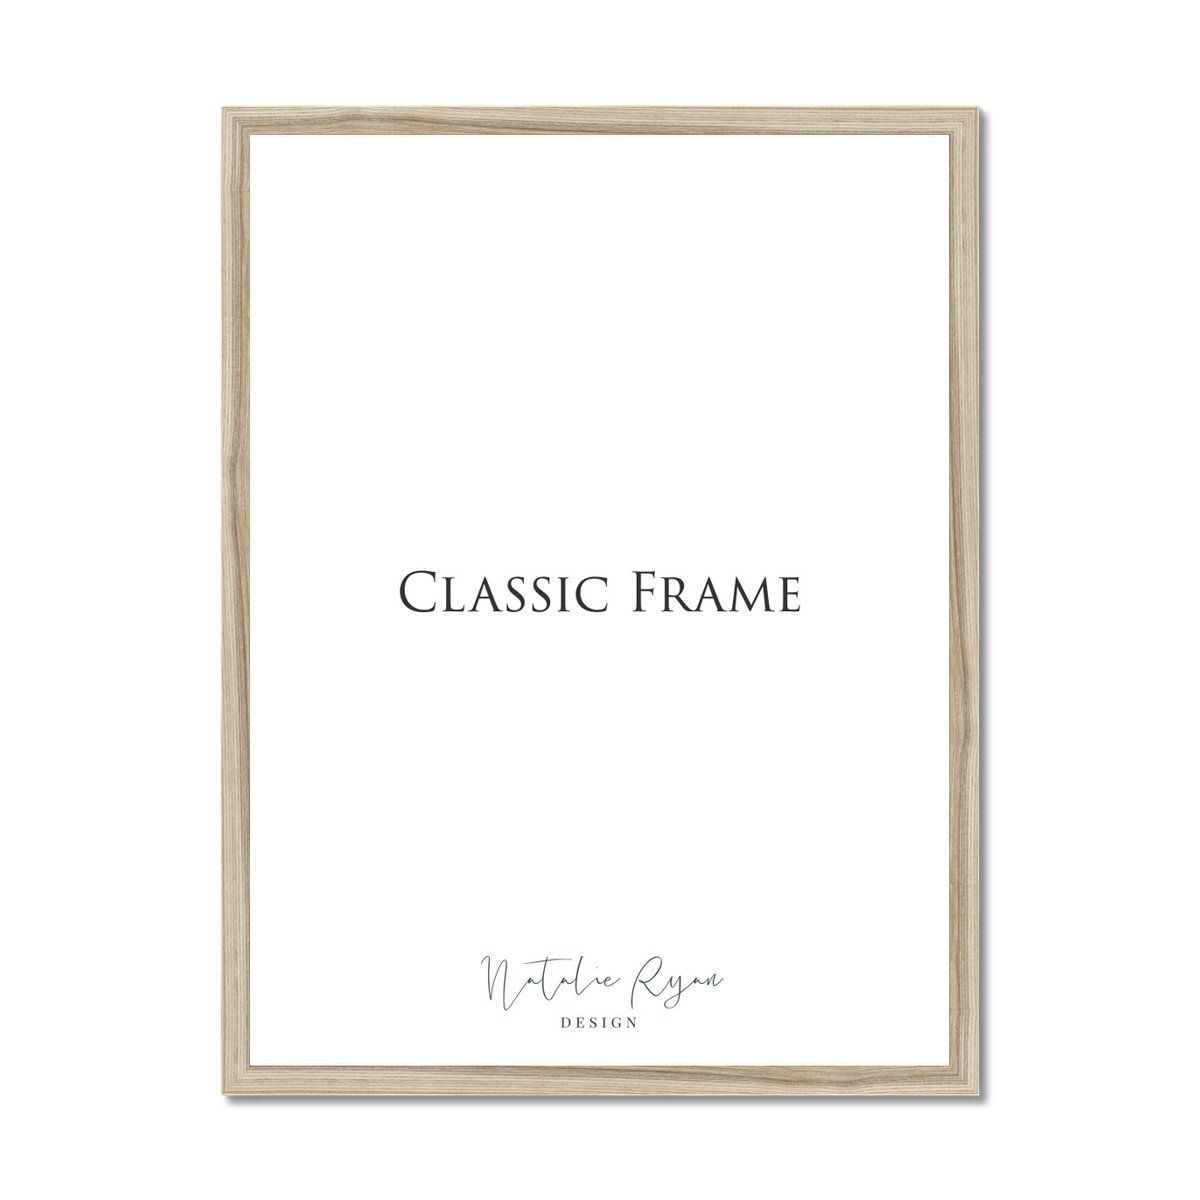 Classic picture frame, 8x10 in / 20x25 cm, Natural